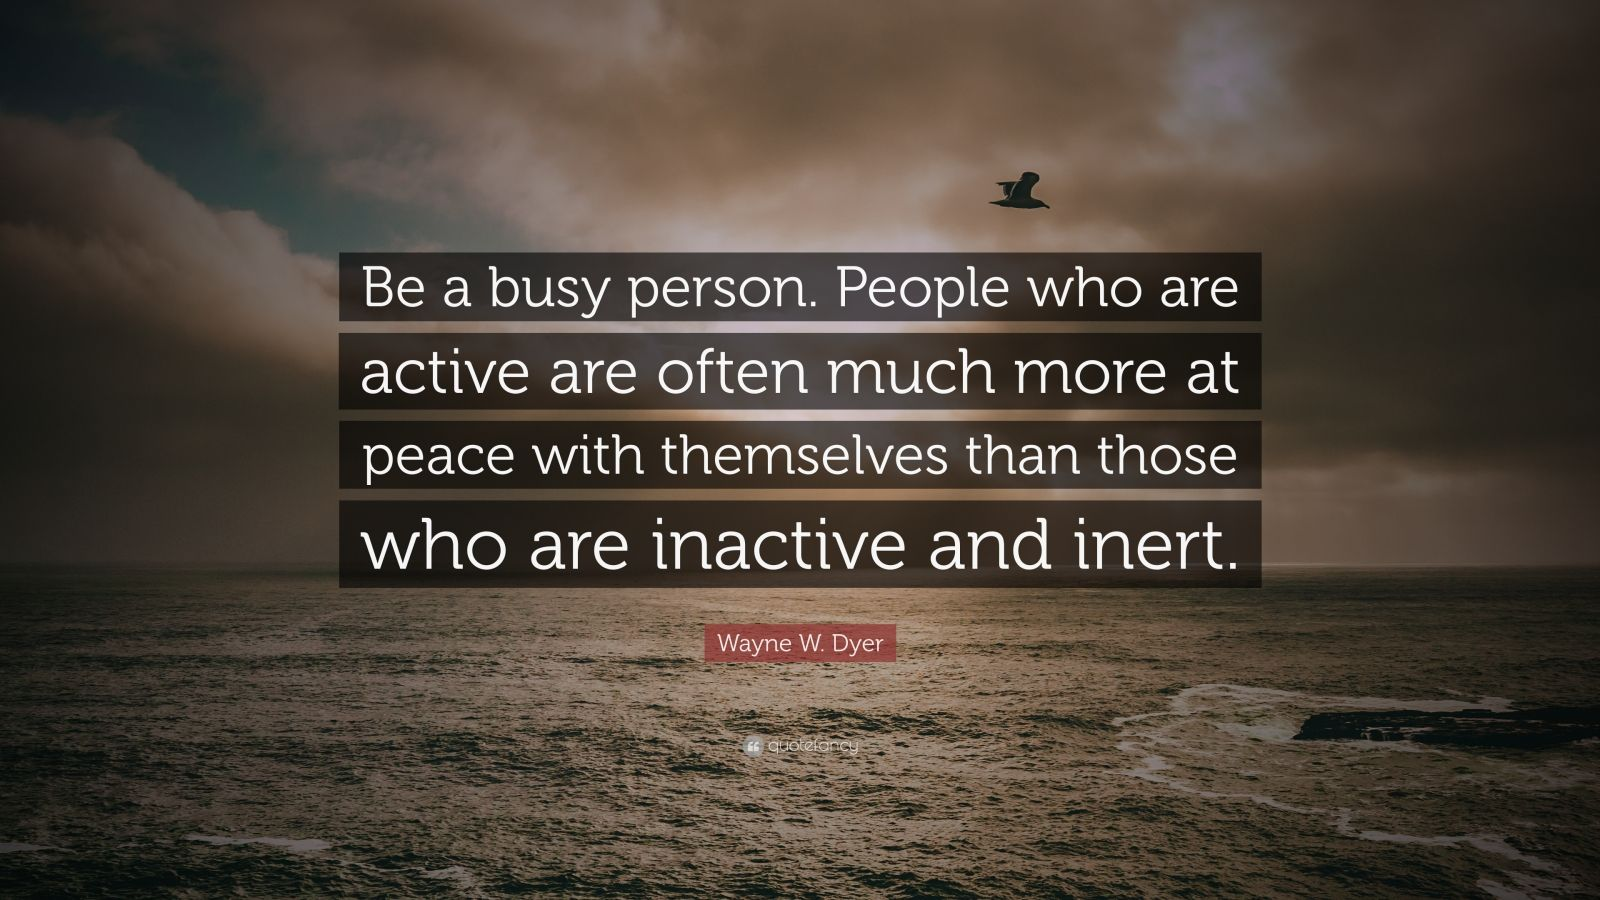 """Wayne W. Dyer Quote: """"Be a busy person. People who are active are often much more at peace with themselves than those who are inactive and inert."""""""